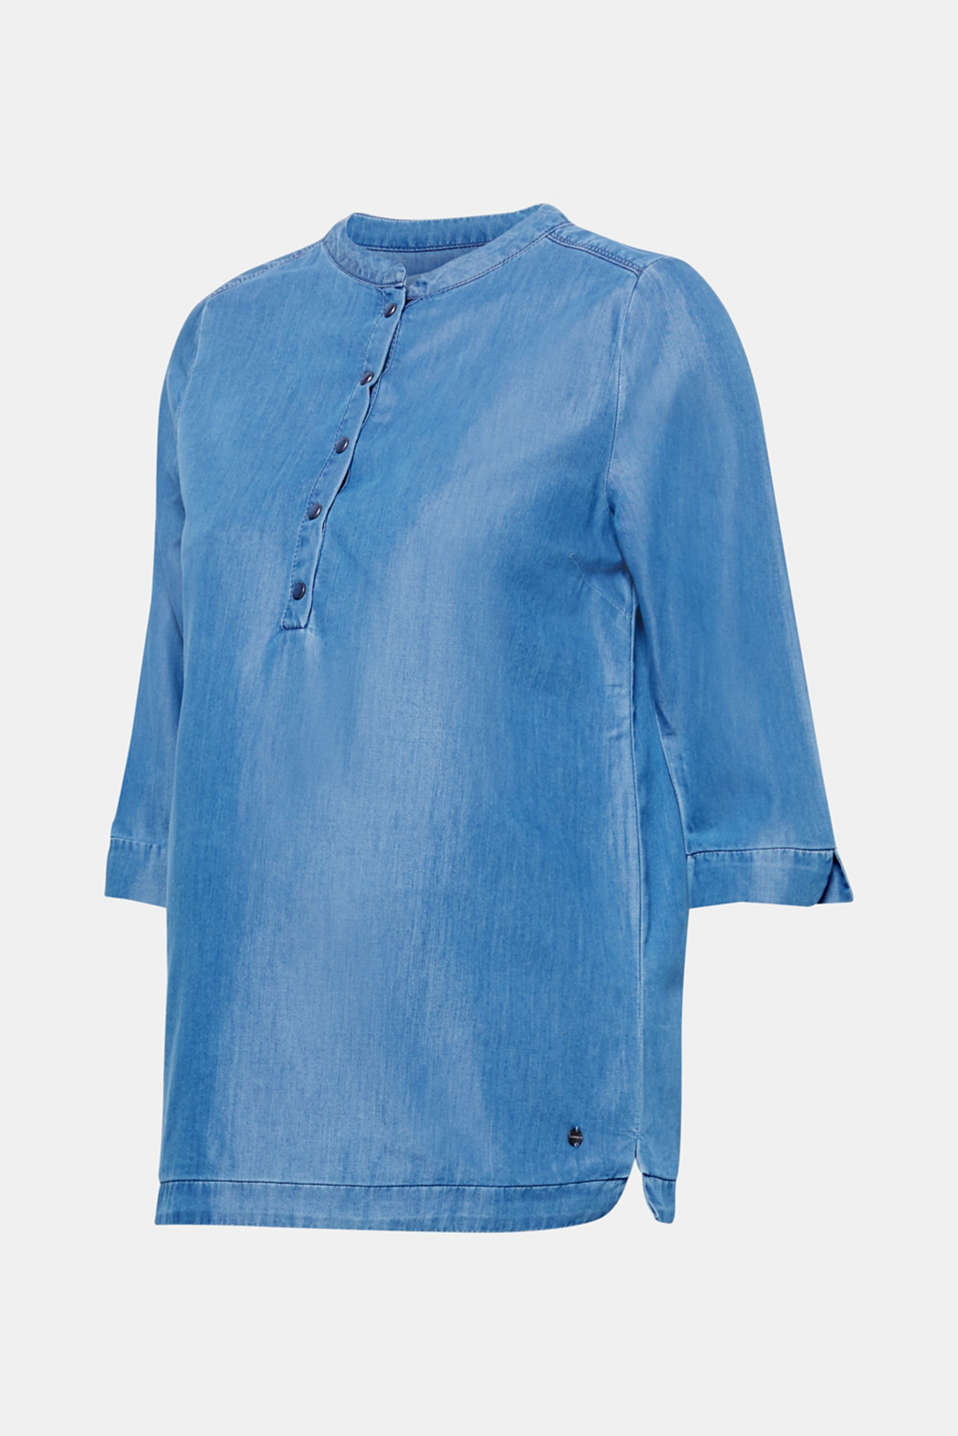 Denim blouse with three-quarter length sleeves, LCBRIGHT BLUE, detail image number 8